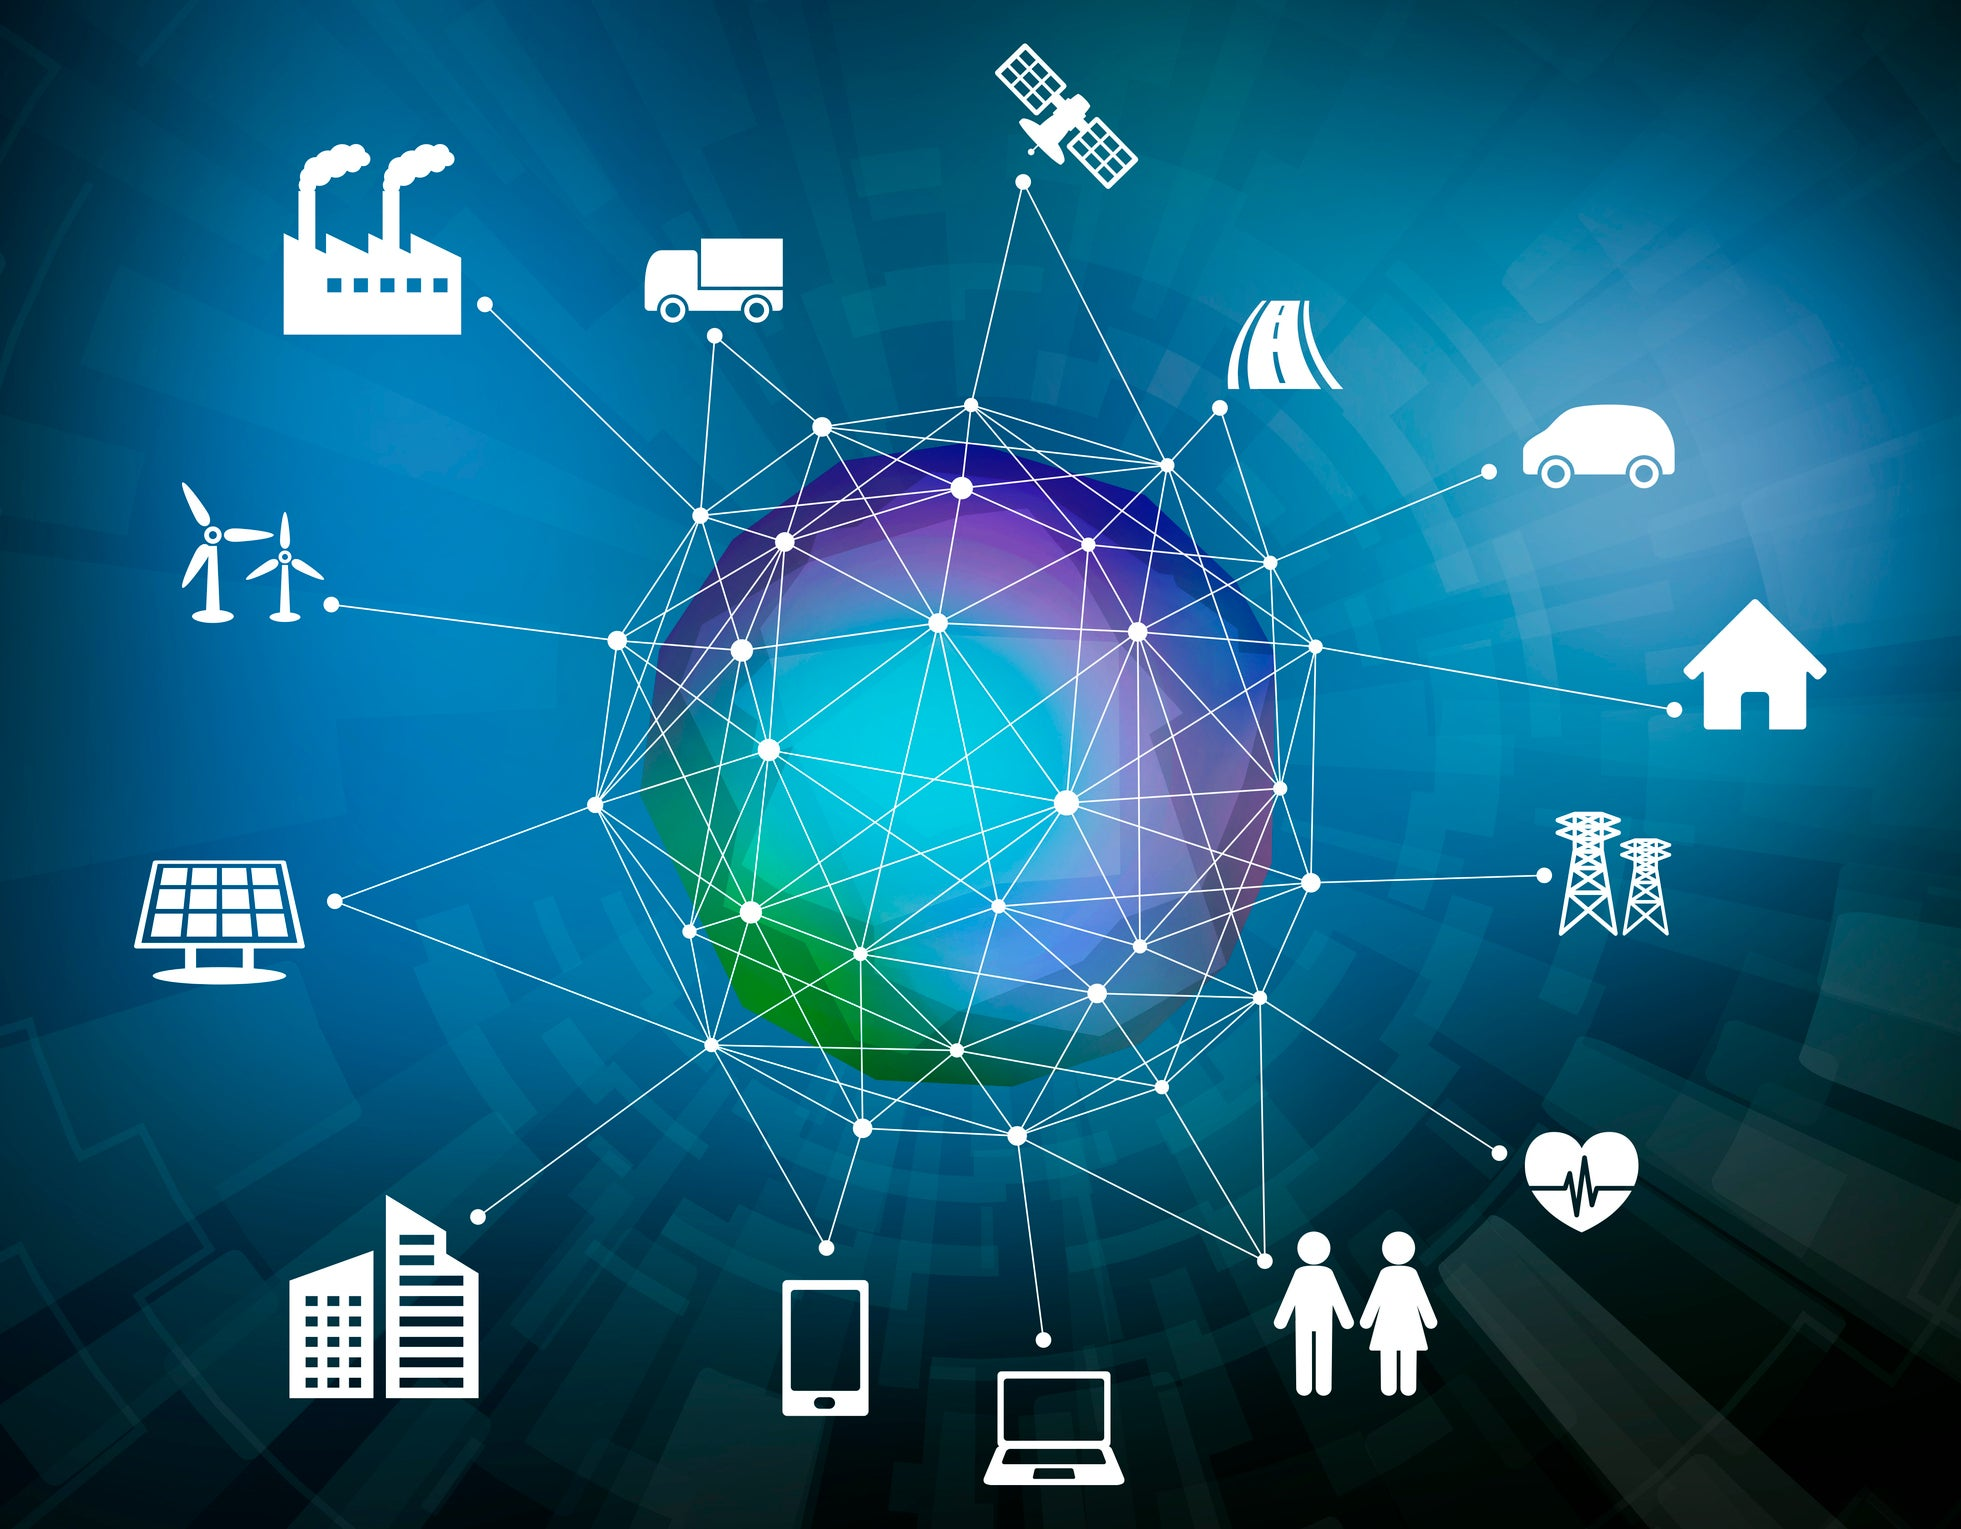 Earth in center surrounded by icons of various interconnected things, such as a car, a house, a factory, people, etc. -- concept for Internet of Things.